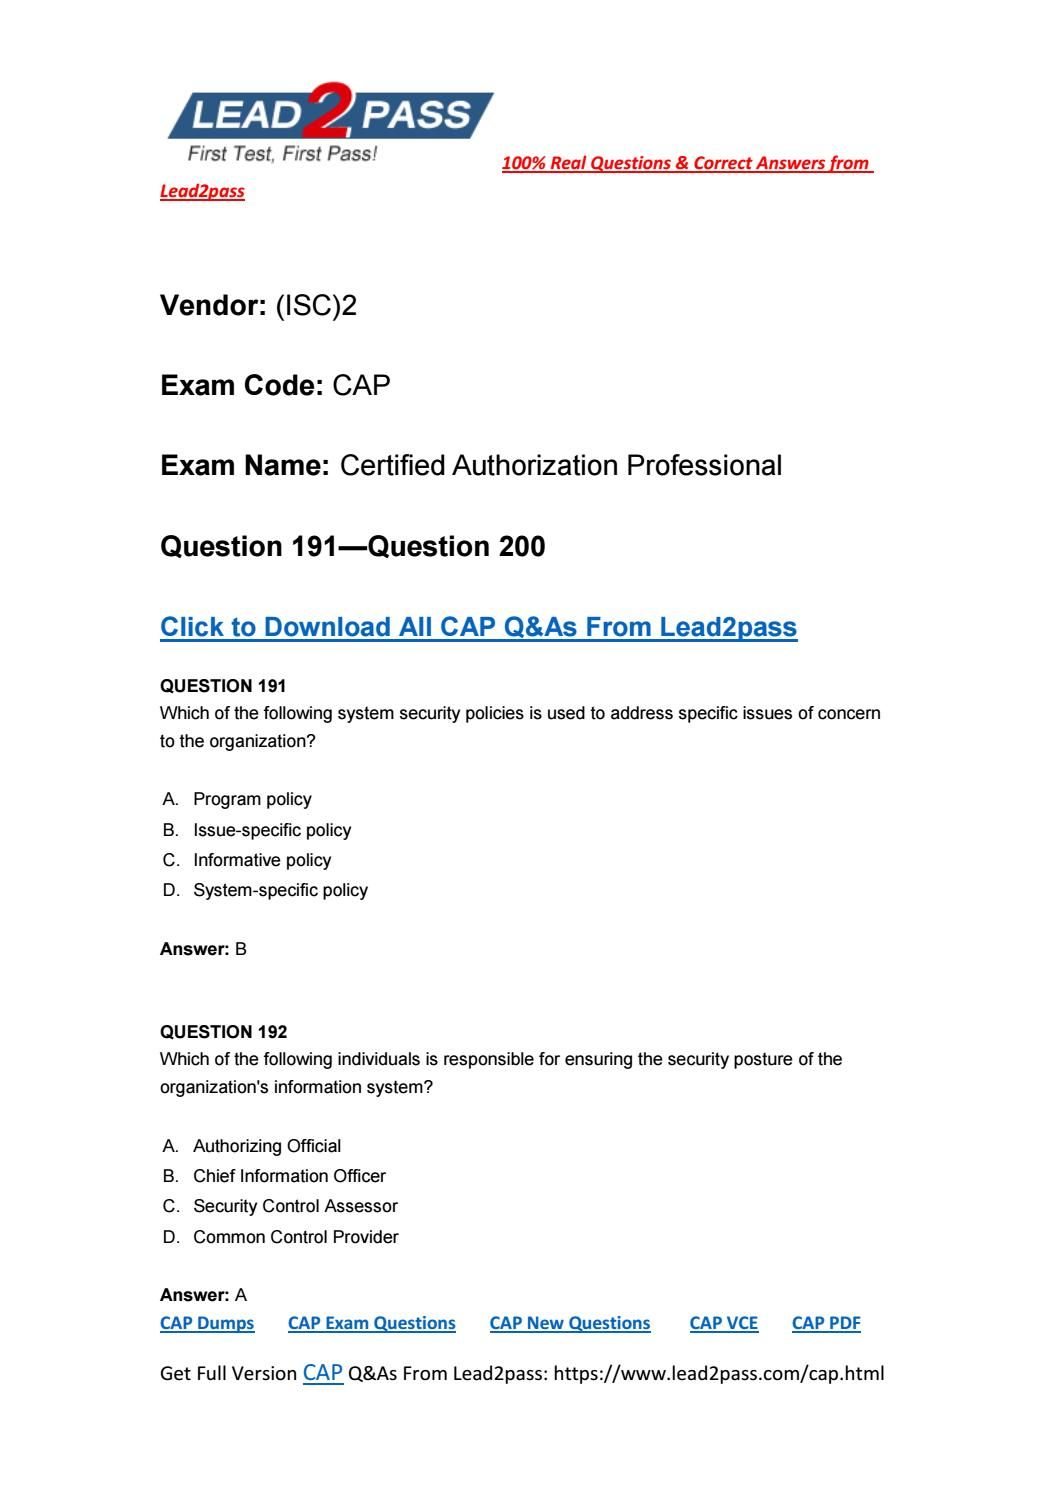 Lead2pass New Released CAP Exam Questions From (ISC)2 Exam